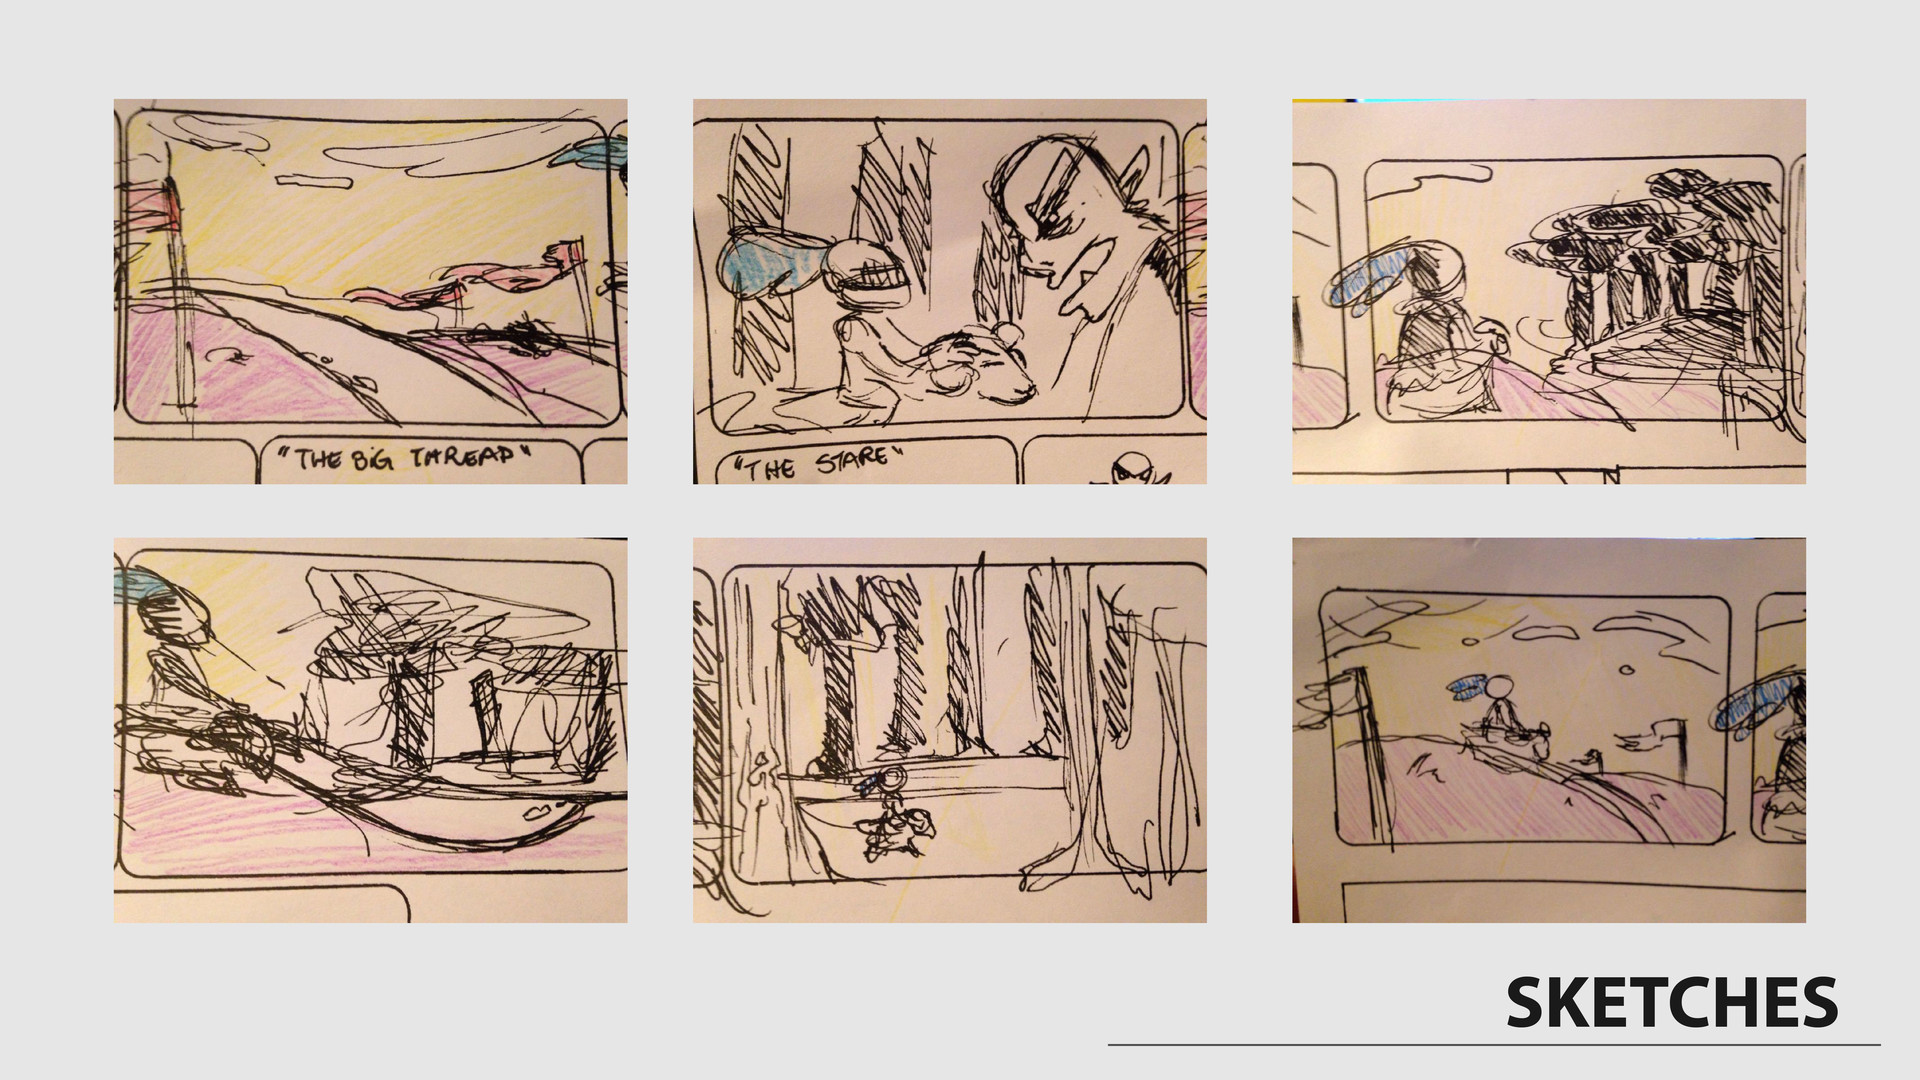 First sketches on the storyboard.